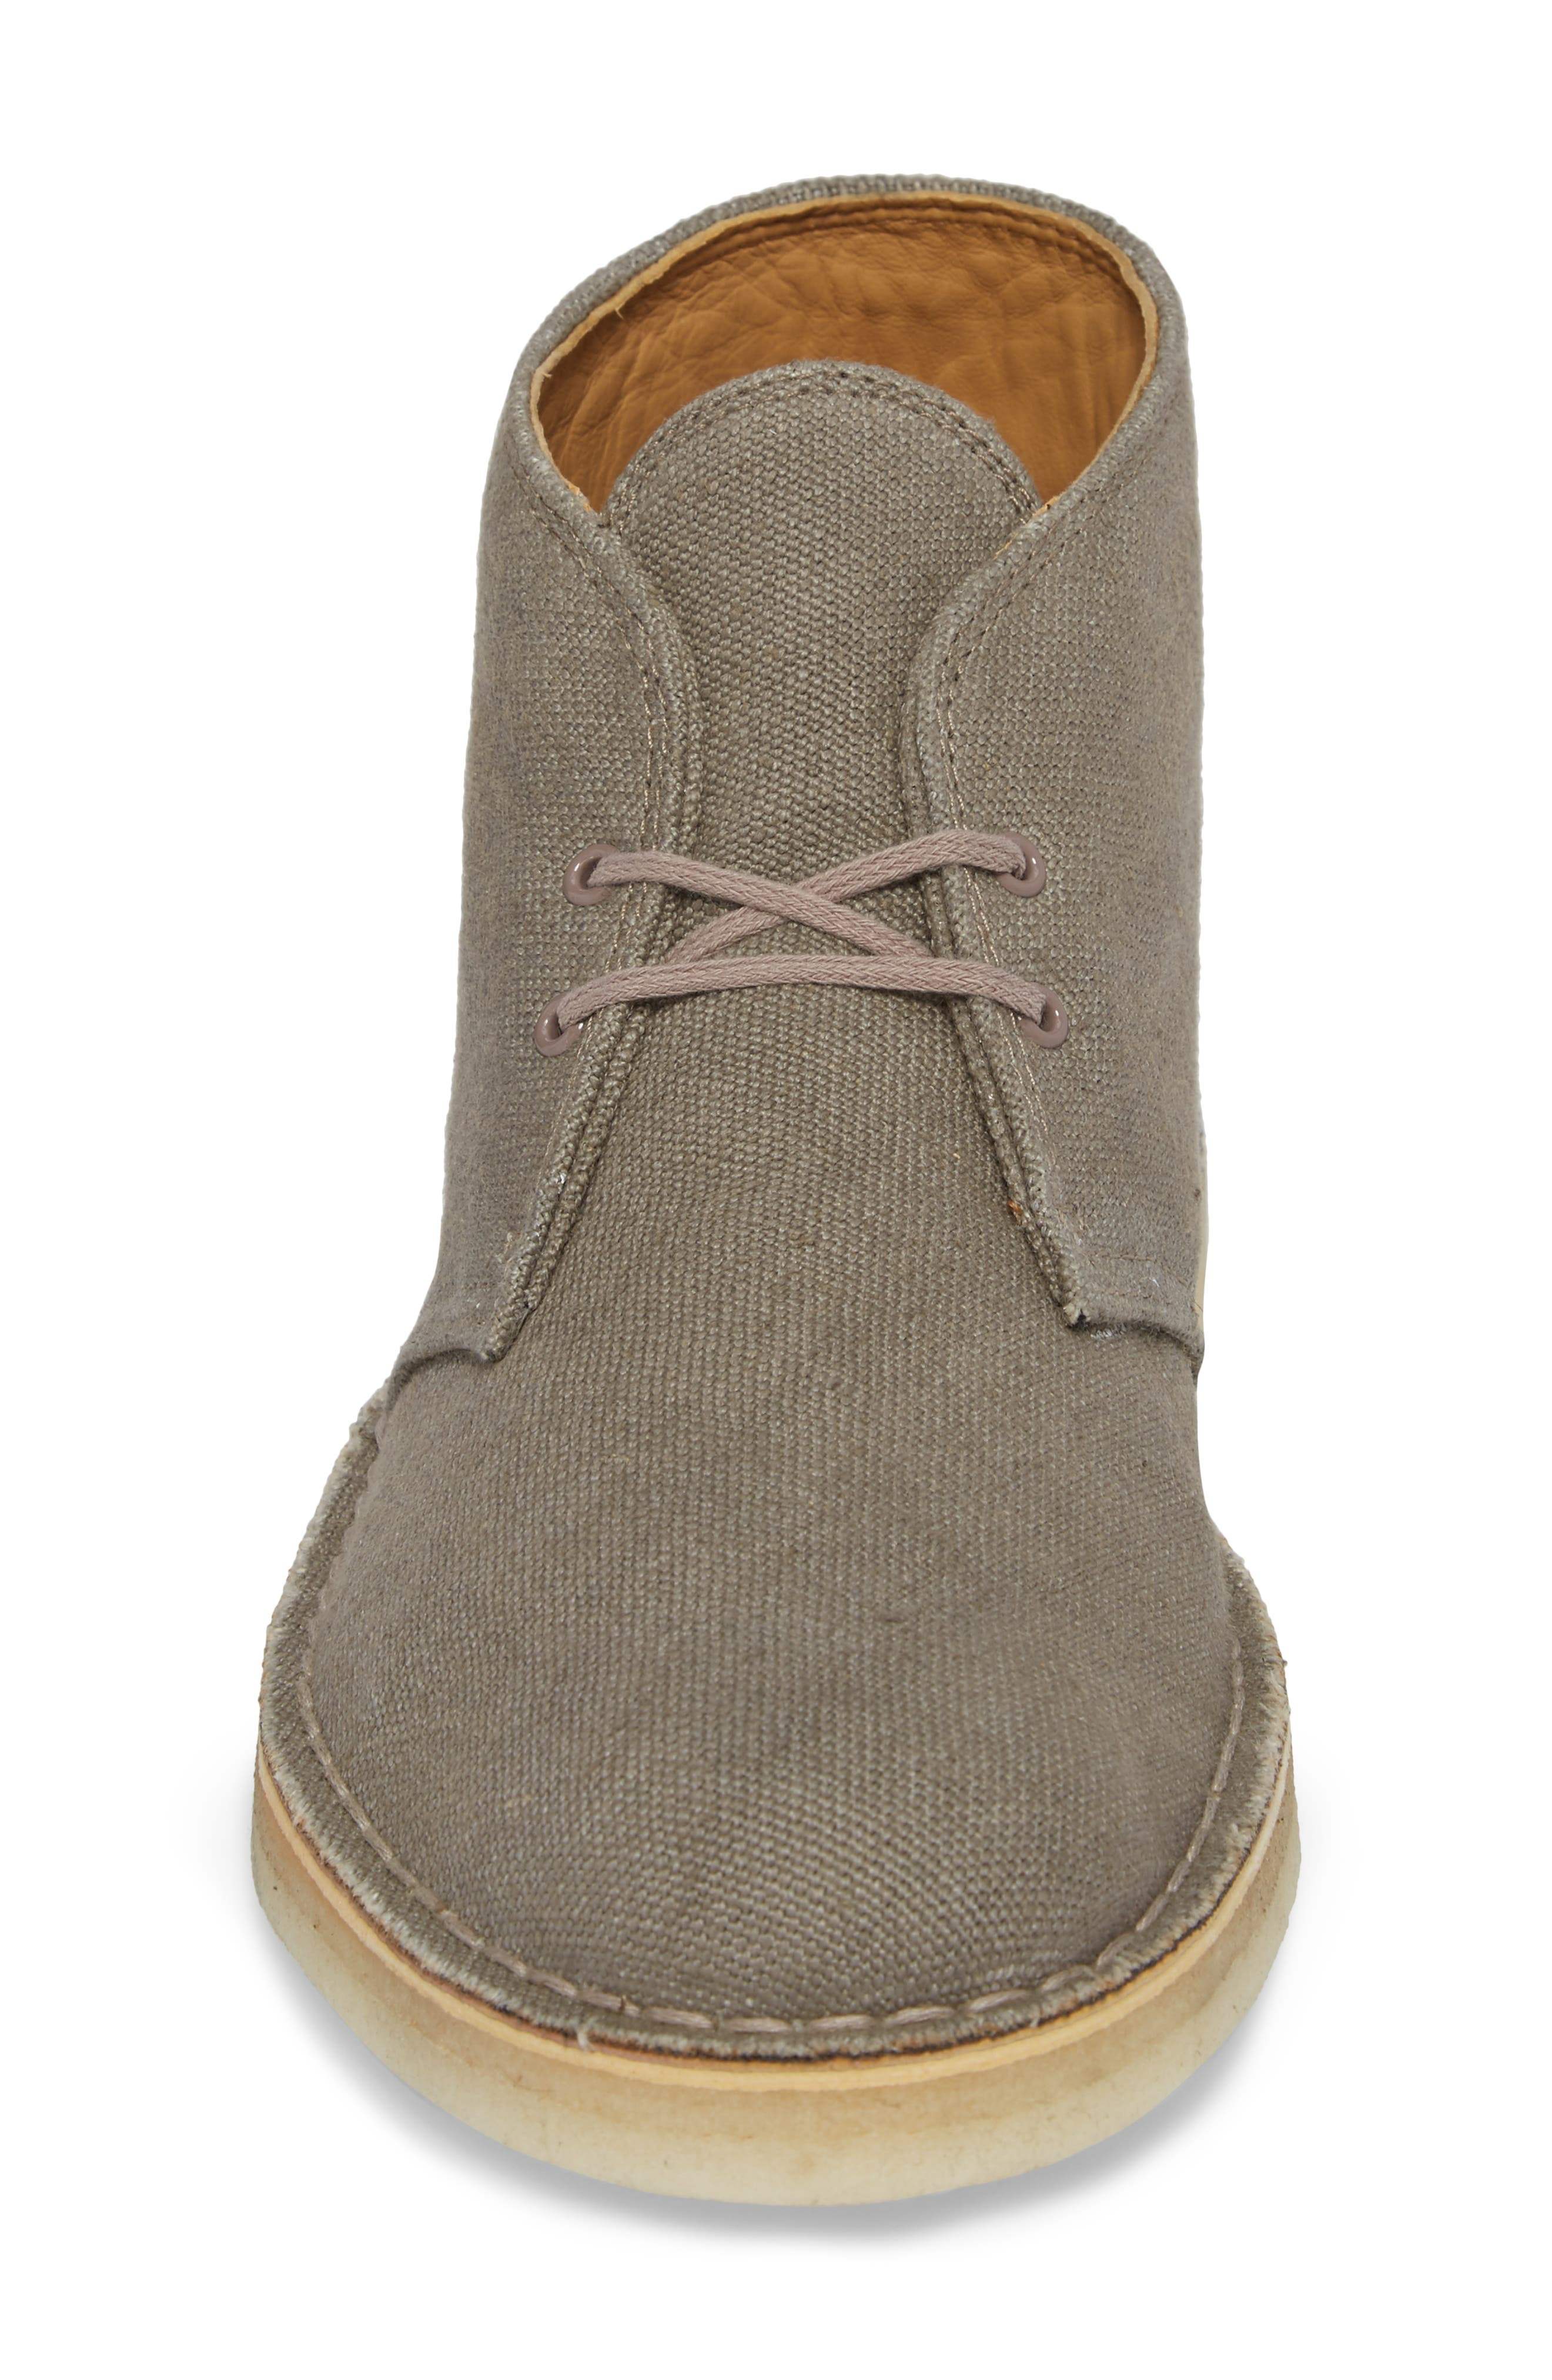 Clarks<sup>®</sup> Desert Chukka Boot,                             Alternate thumbnail 4, color,                             Taupe Canvas